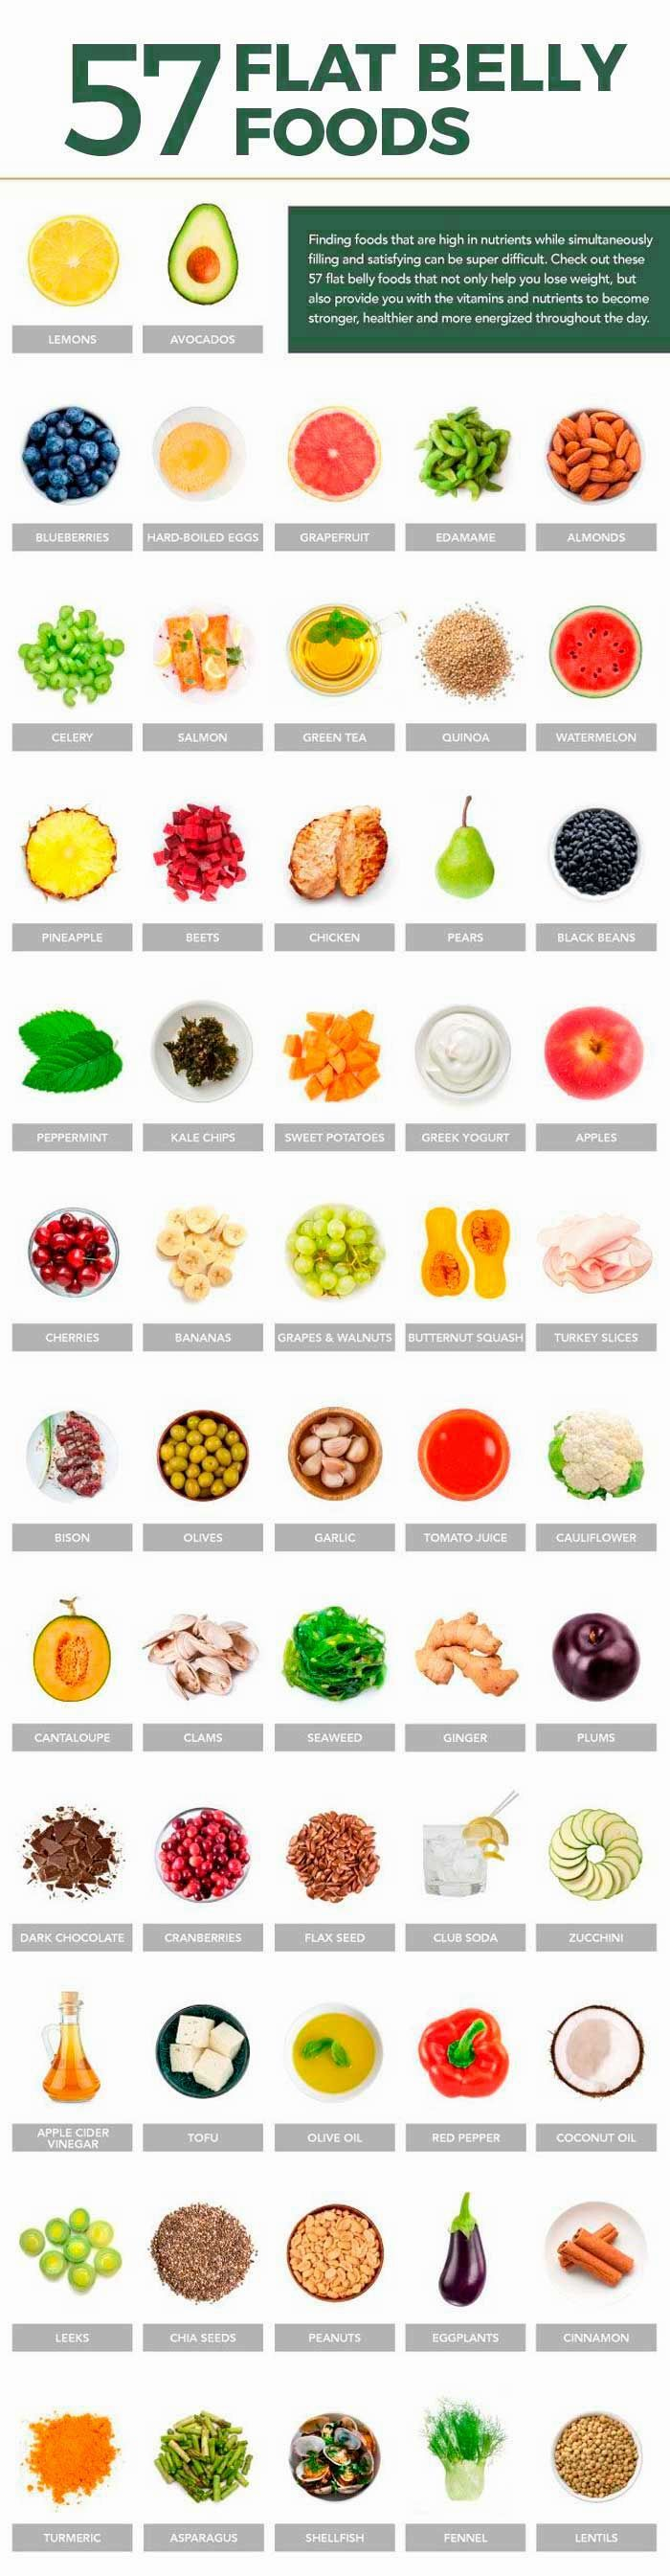 The best fat burning foods. Flat belly foods